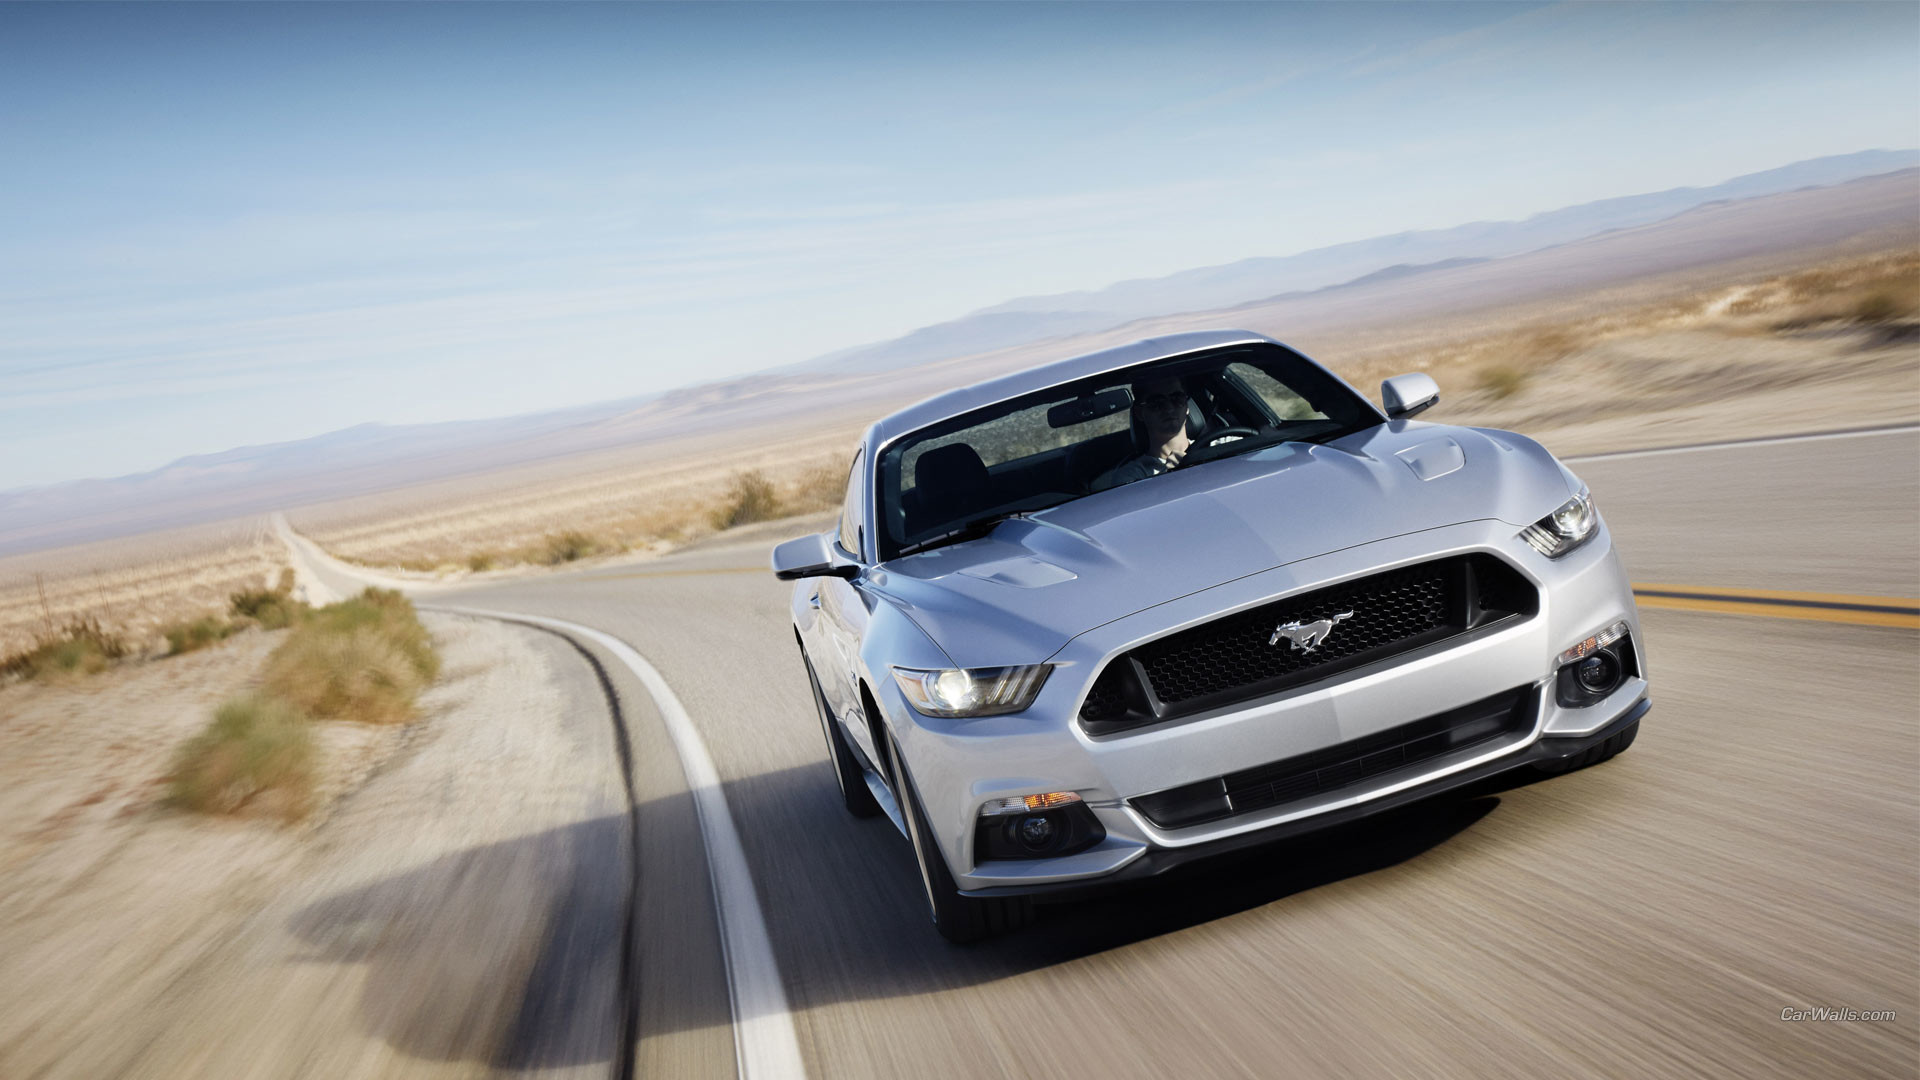 1920x1080 Vehicles - 2015 Ford Mustang GT Wallpaper